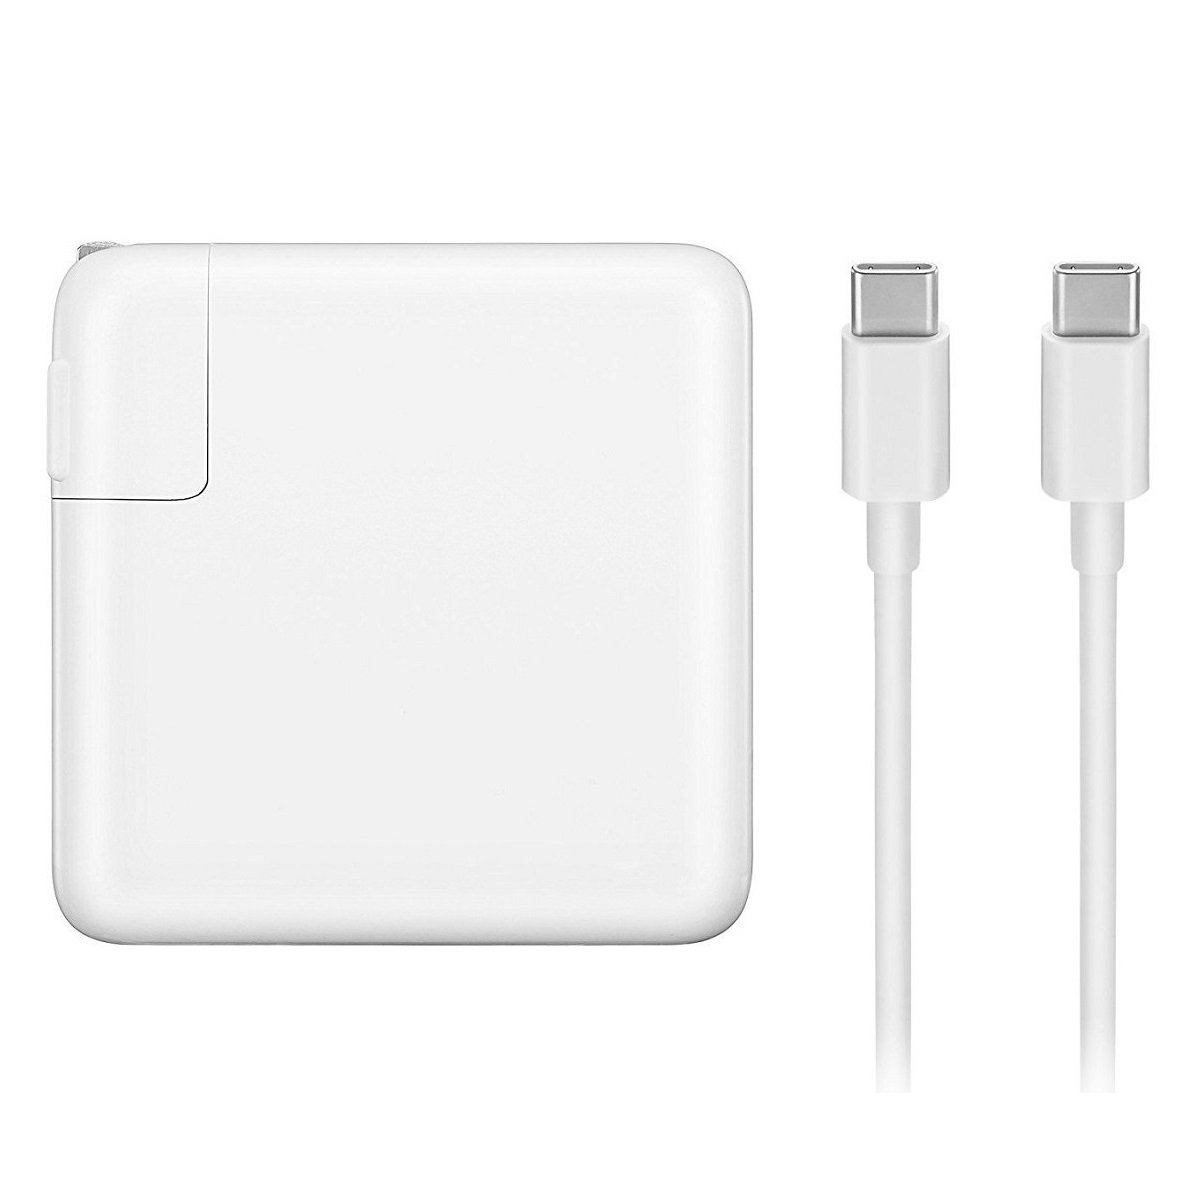 iProPower 87W USB C Power Adapter Charger with USB-C to USB-C Charge Cable 6.56 ft